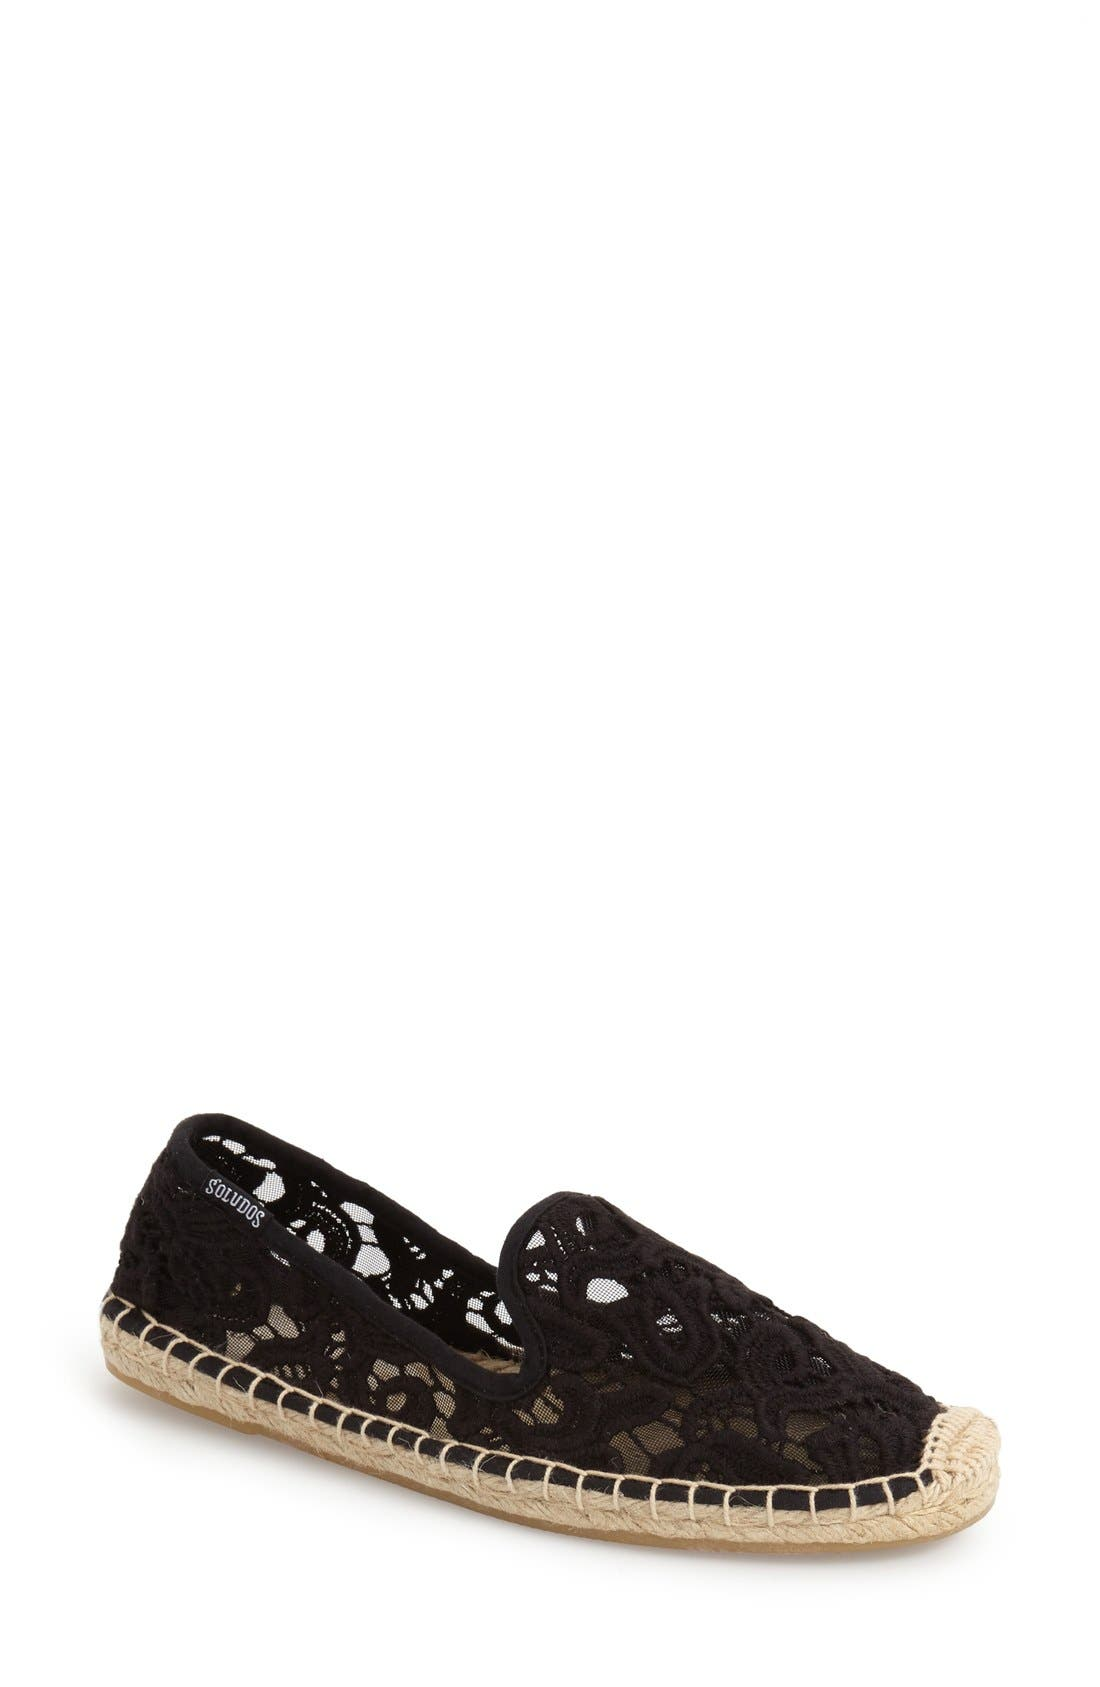 Alternate Image 1 Selected - Soludos Lace Espadrille Slip-On (Women)